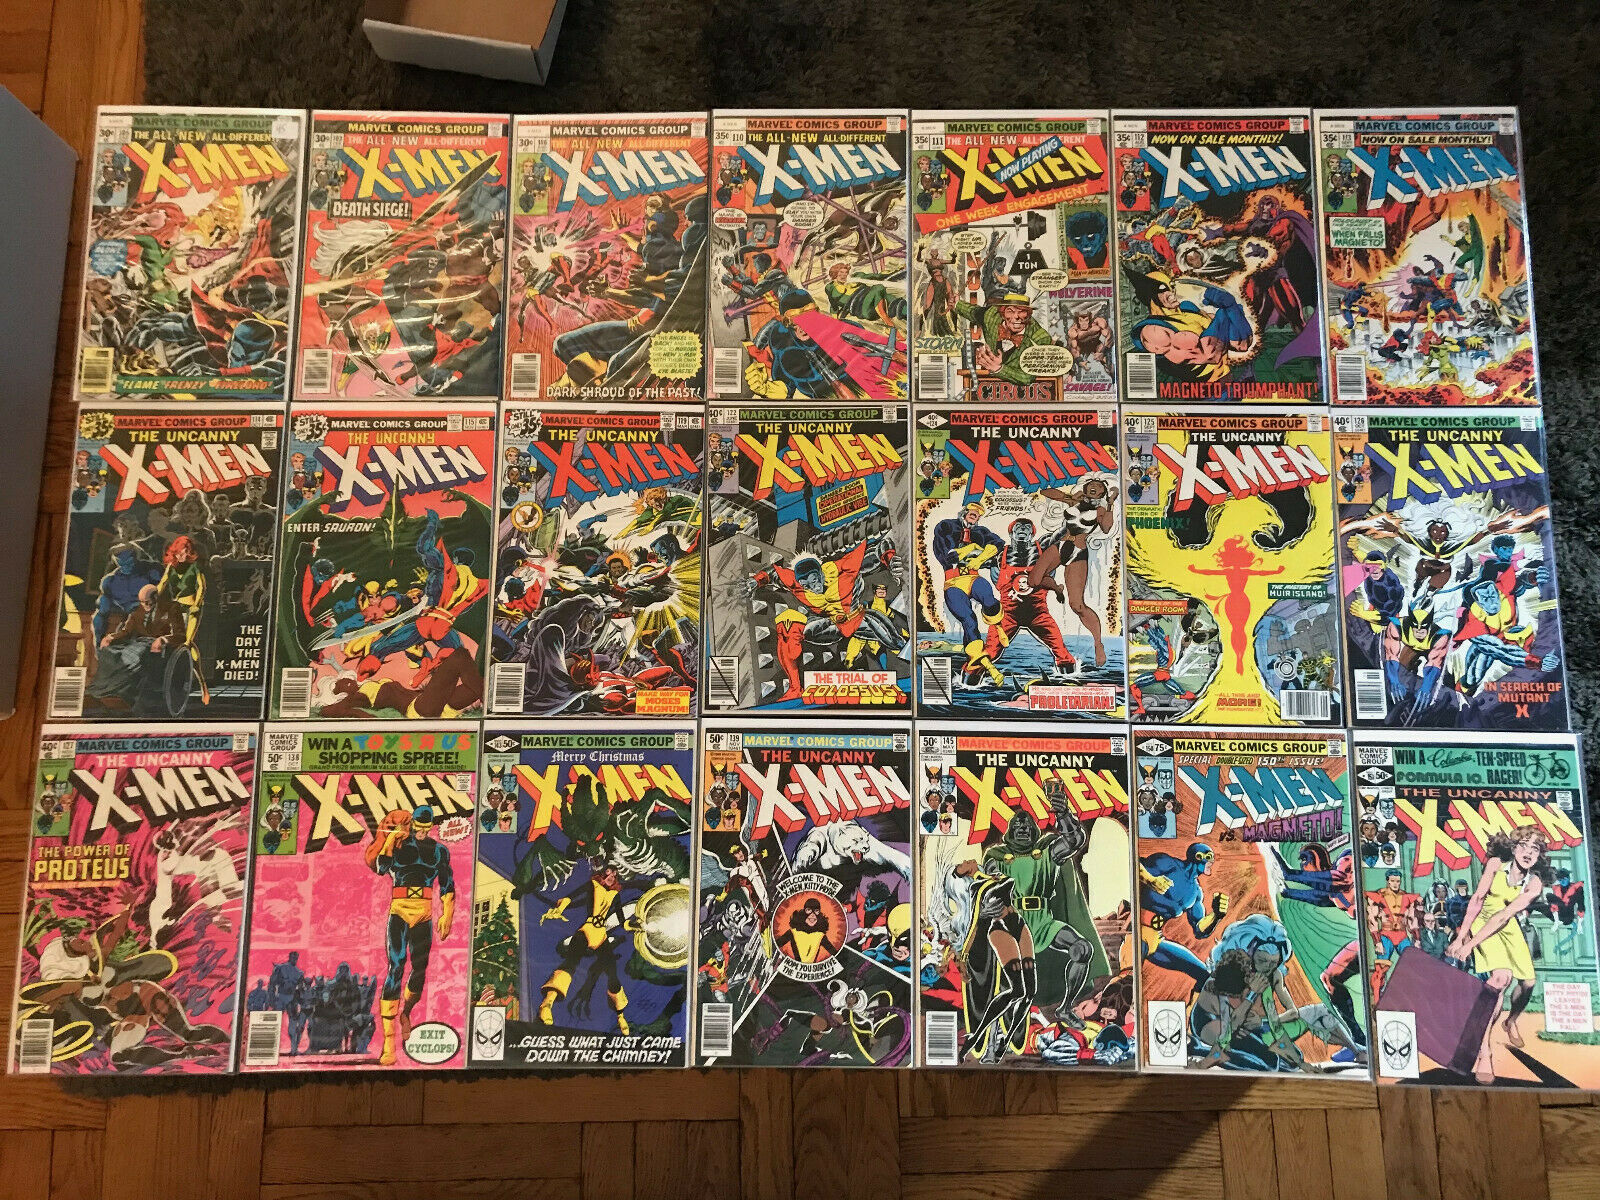 Uncanny X-men #103, 105, 106, 110, 111, 112, 113, 114, 115, 119, 122, 124, MORE